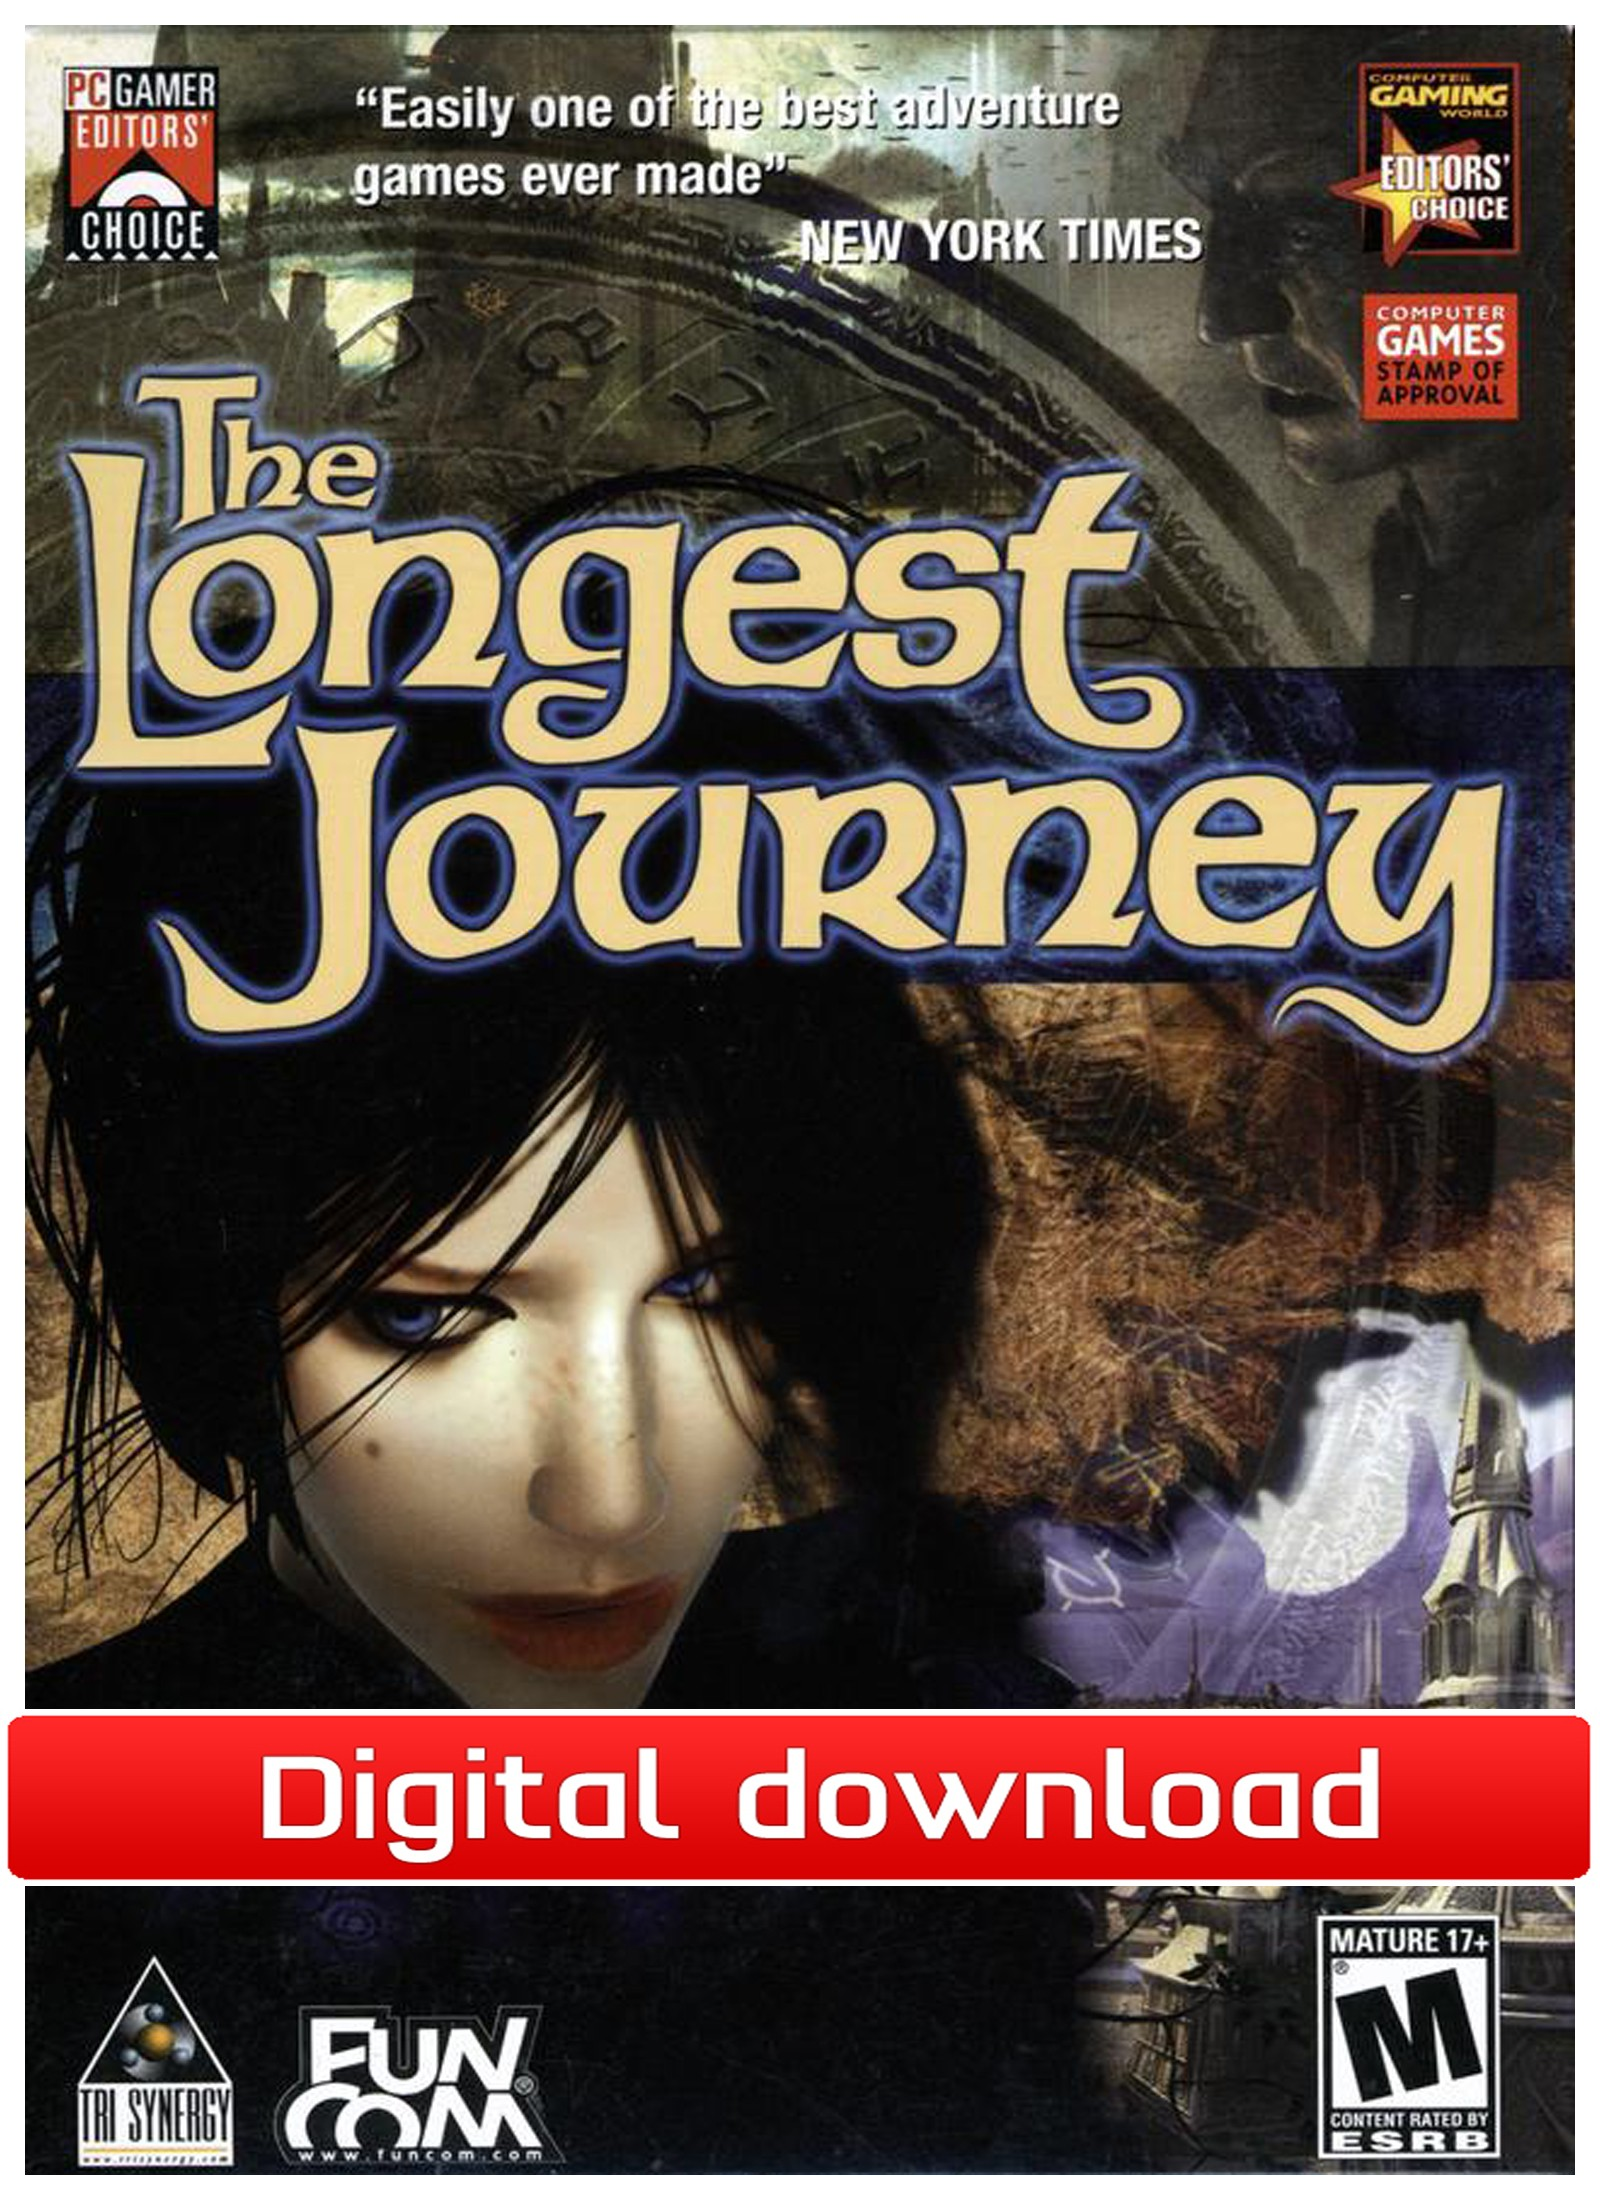 38346 : The Longest Journey (PC nedlastning)